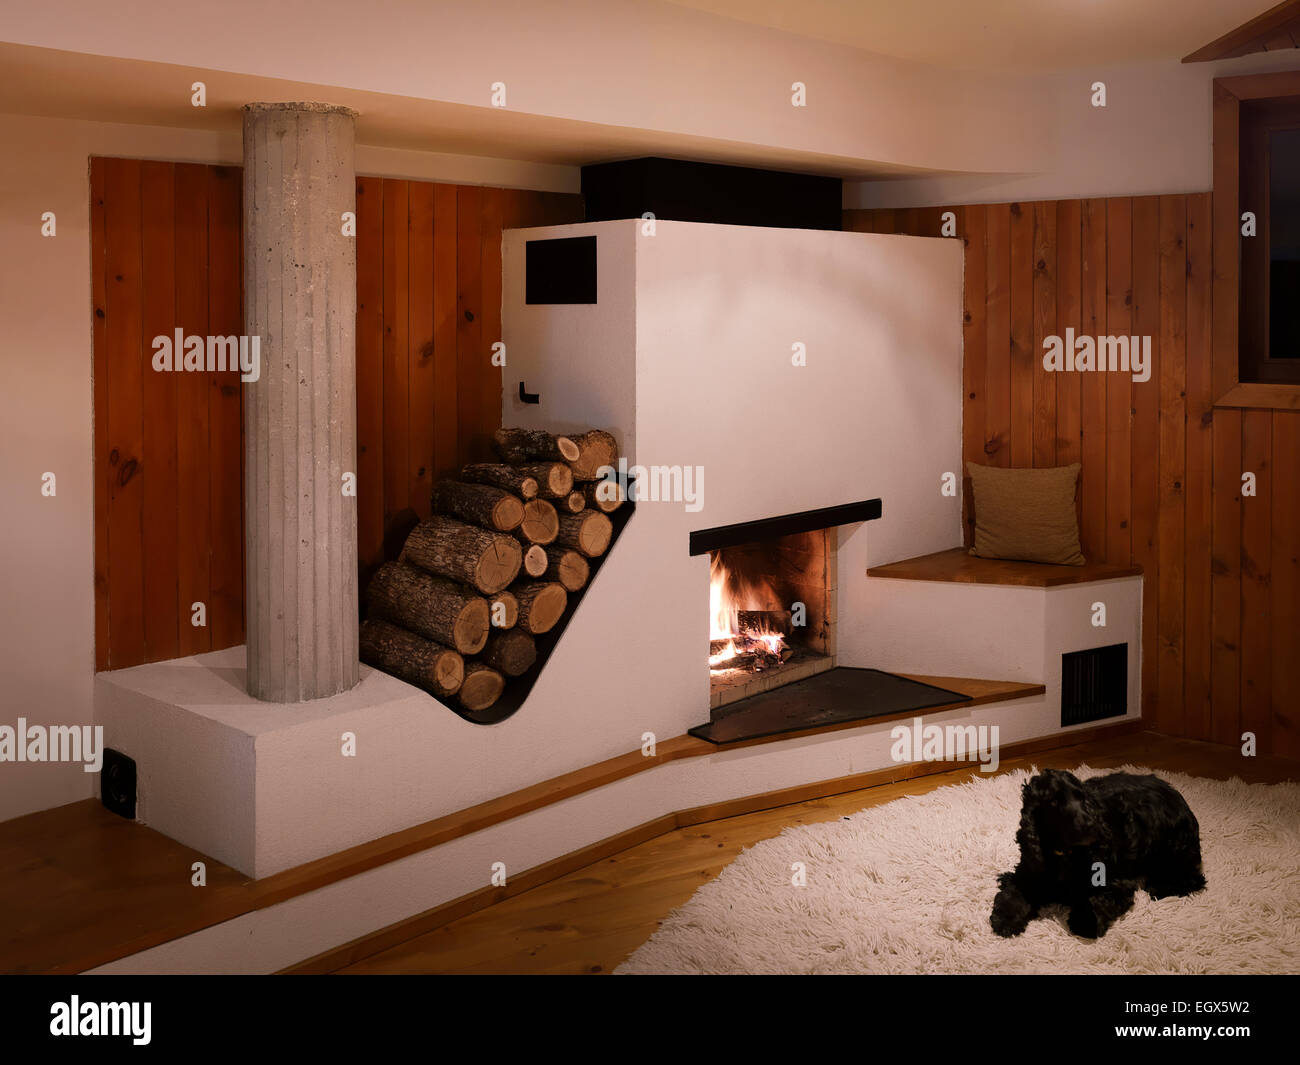 Fireplace Storage fireplace with log storage in wood panelled living room, uk home